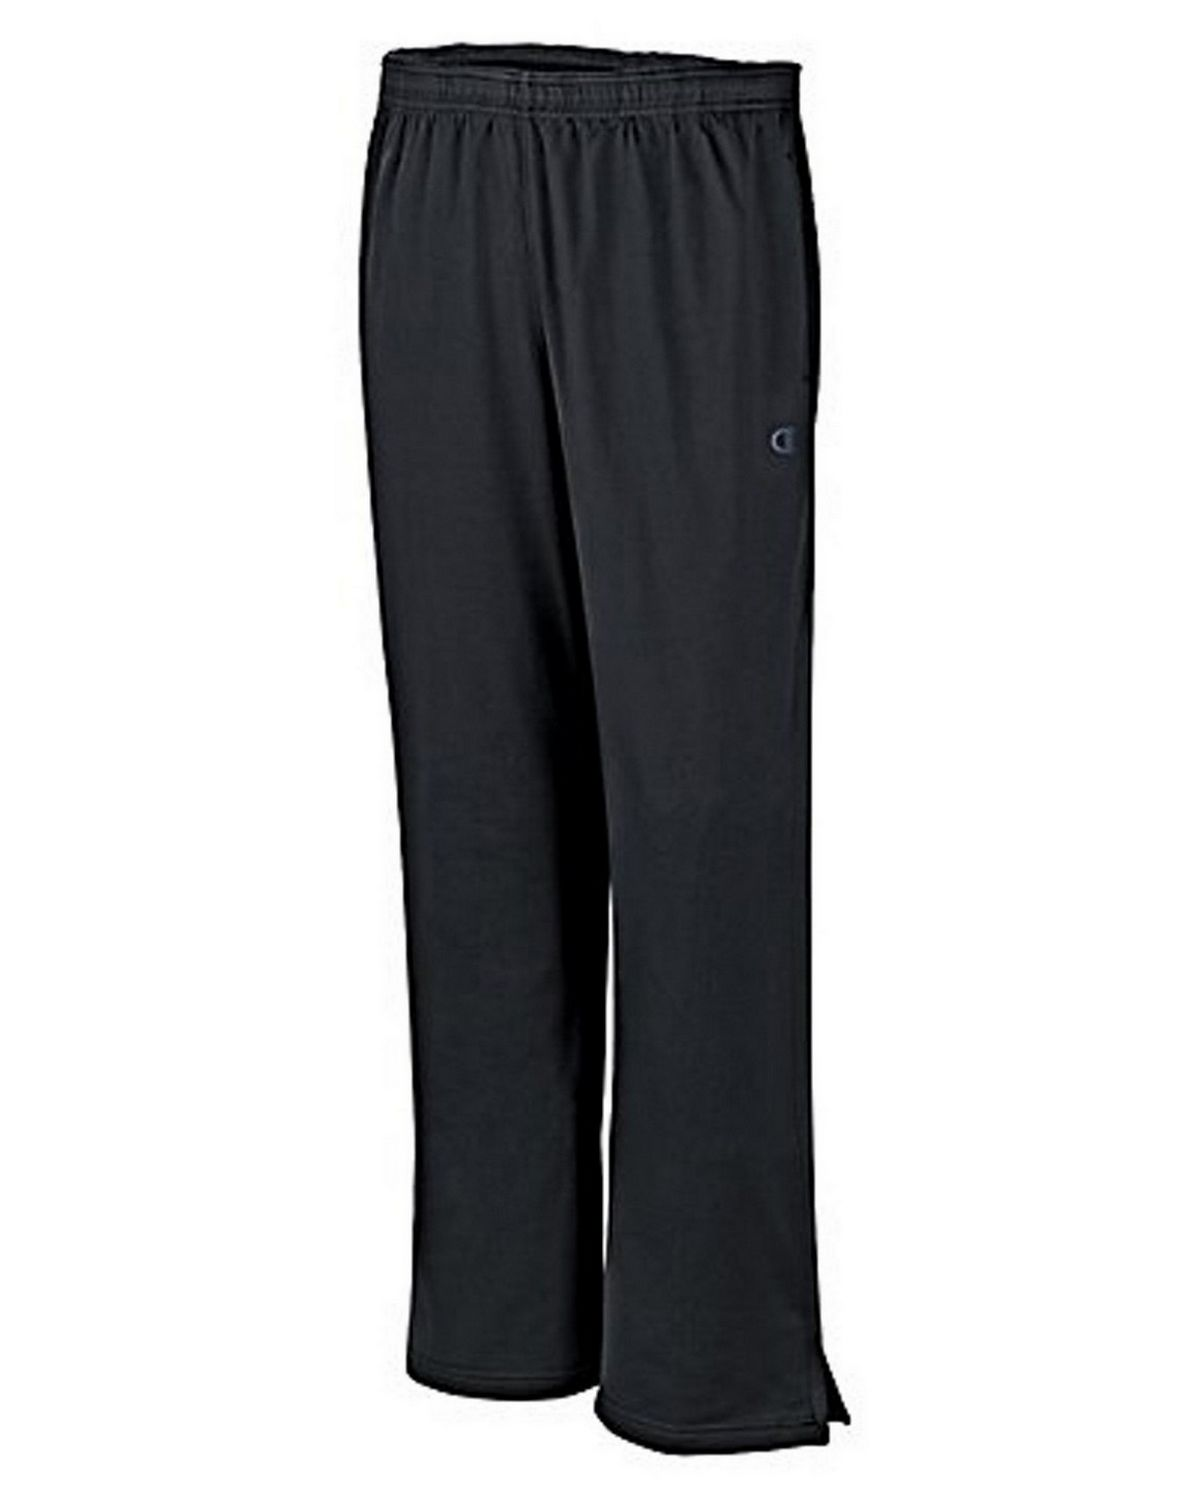 Champion P6609 Vapor PowerTrain Knit Training Pants - Black - S P6609